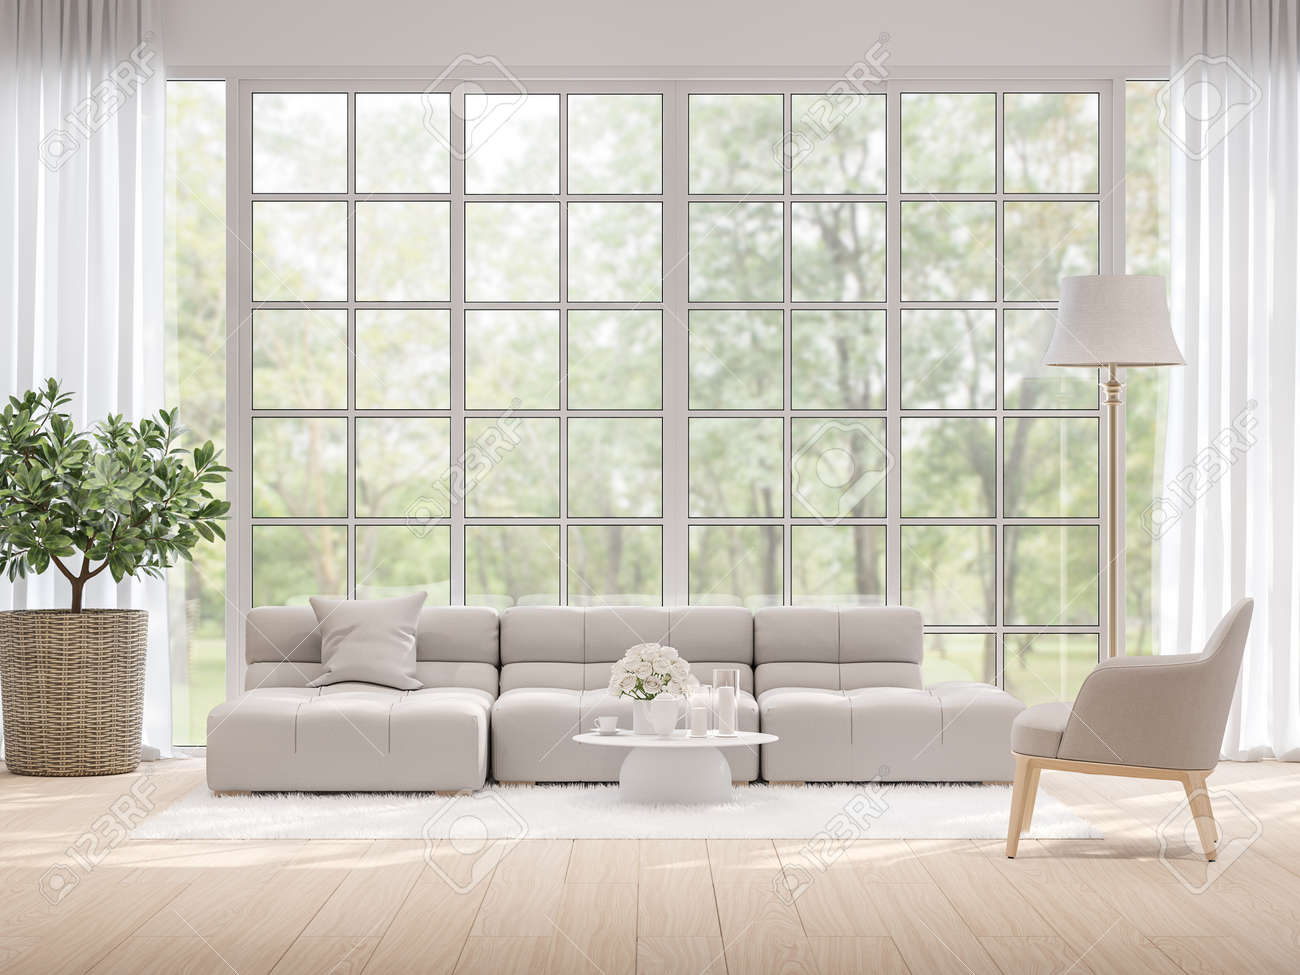 Moderm living room with blurry nature view background 3d render,There light wooden floor and large window overlooking to garden view. - 146964201